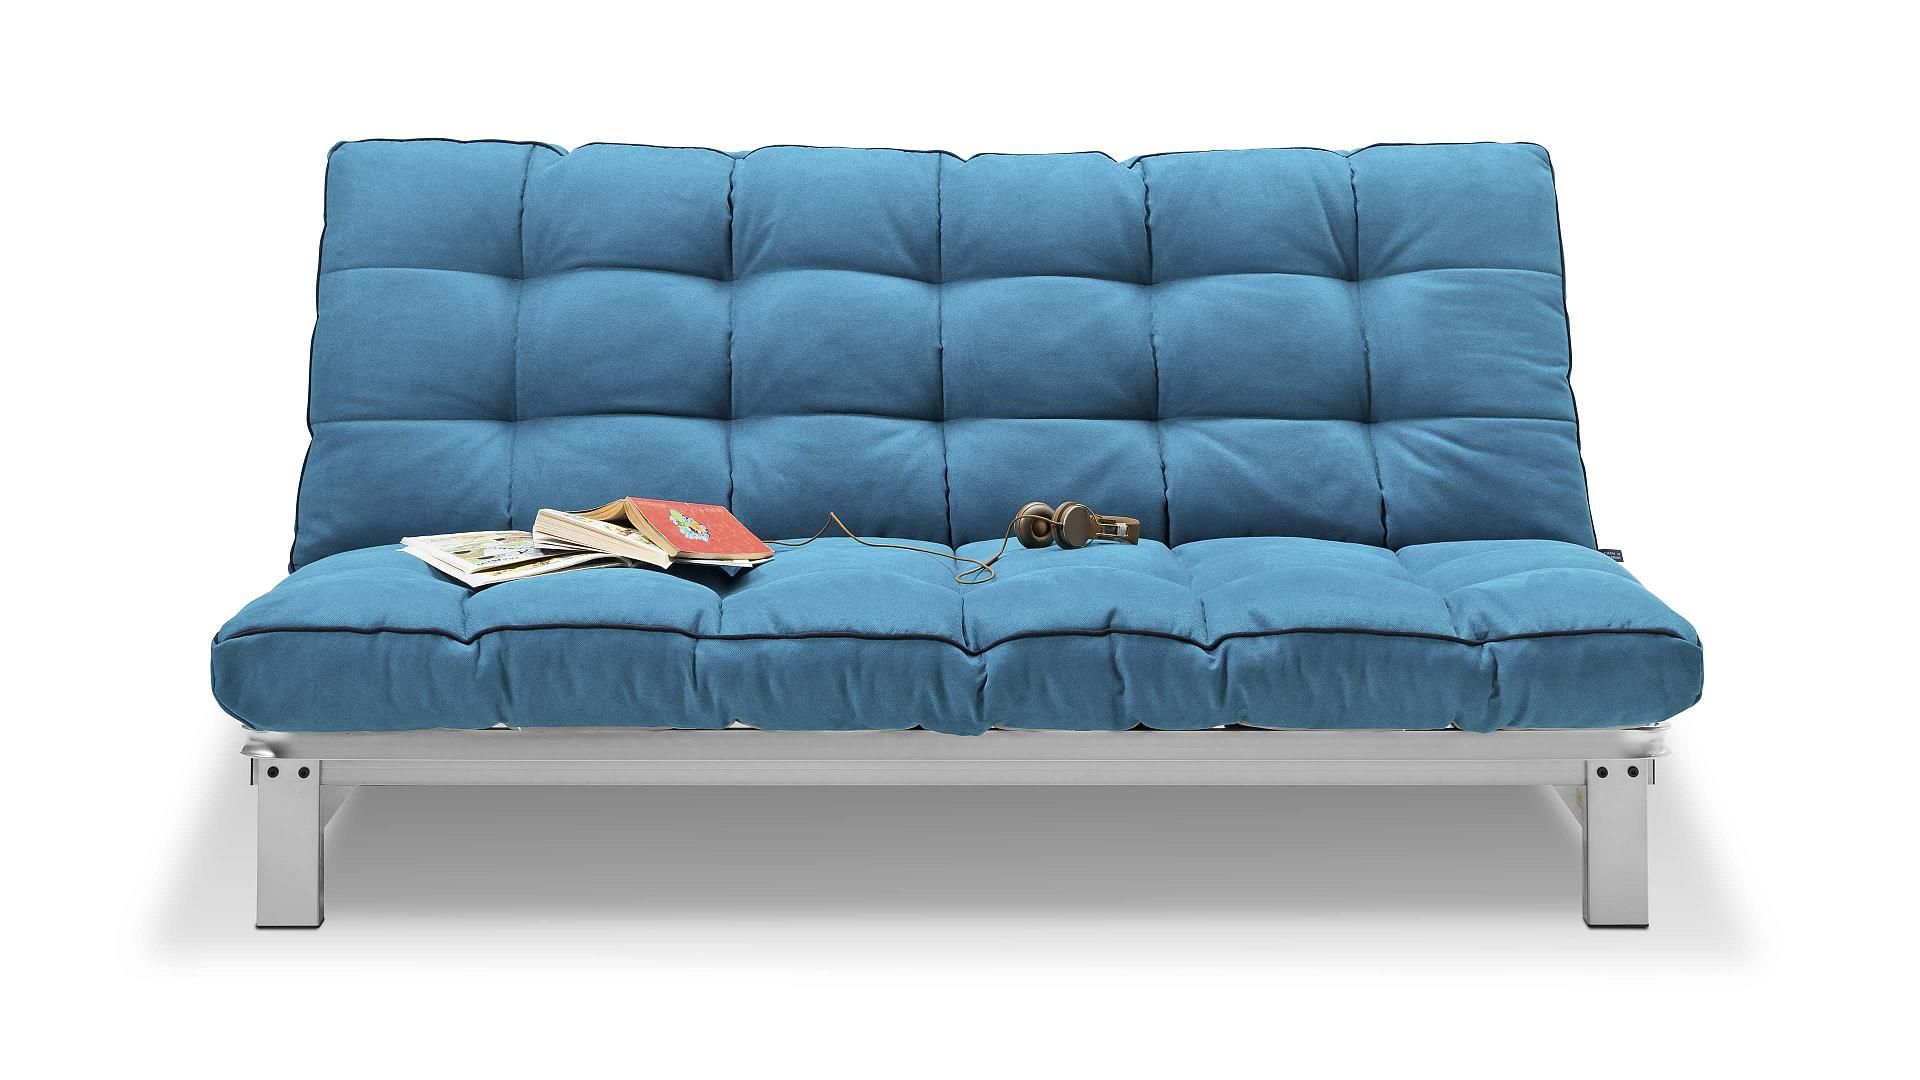 Inspirationen Kawoo Schlafsofa Verholt Aus Stoff Metall In Petrol In Trend Junges Wohnen Made In Germany Modern Kawo Sofa Upcycelte Mobel Junges Wohnen